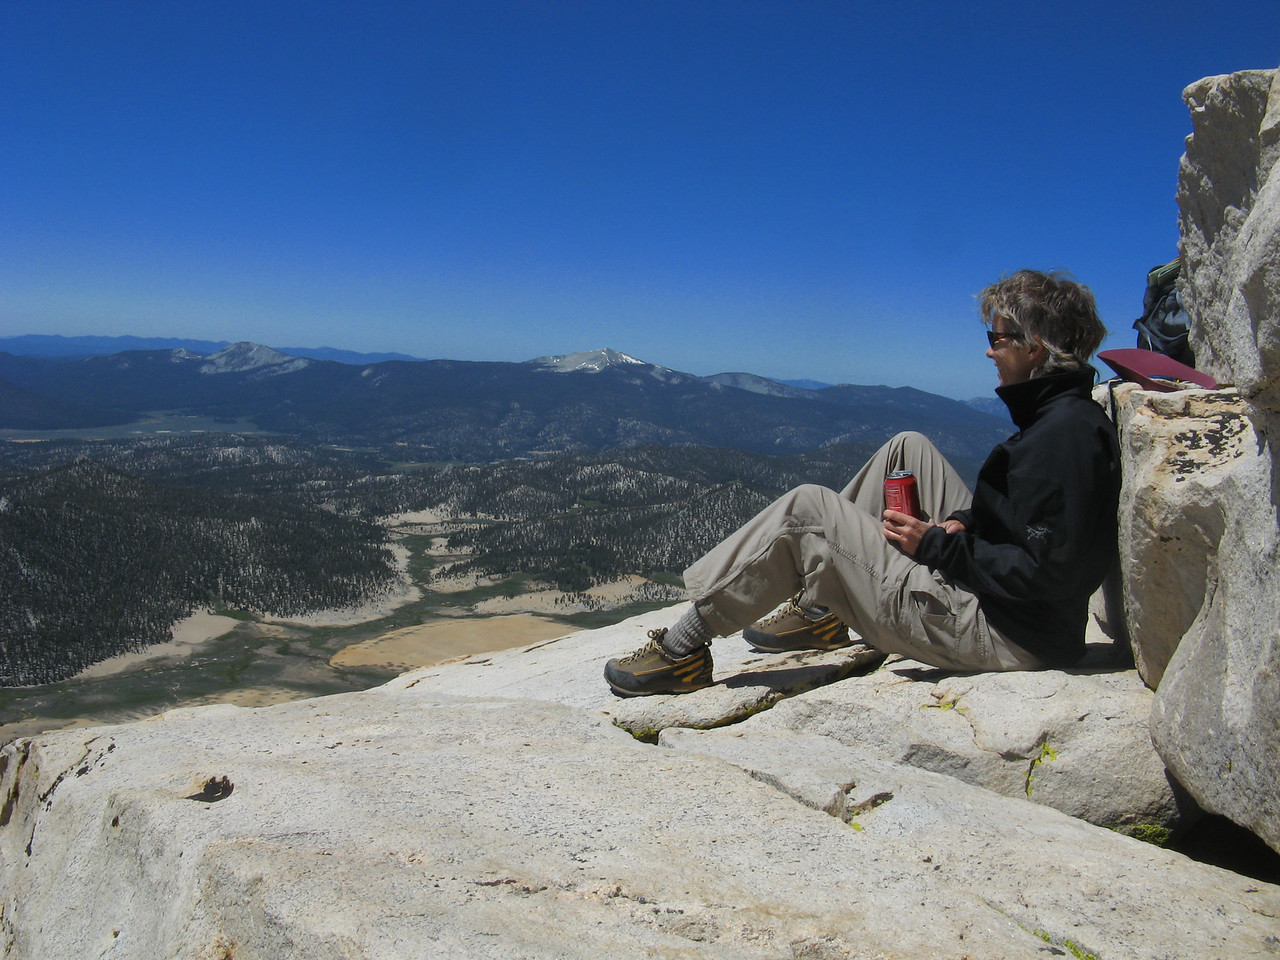 Relaxing with my summit Coke, looking at the southern sierra.